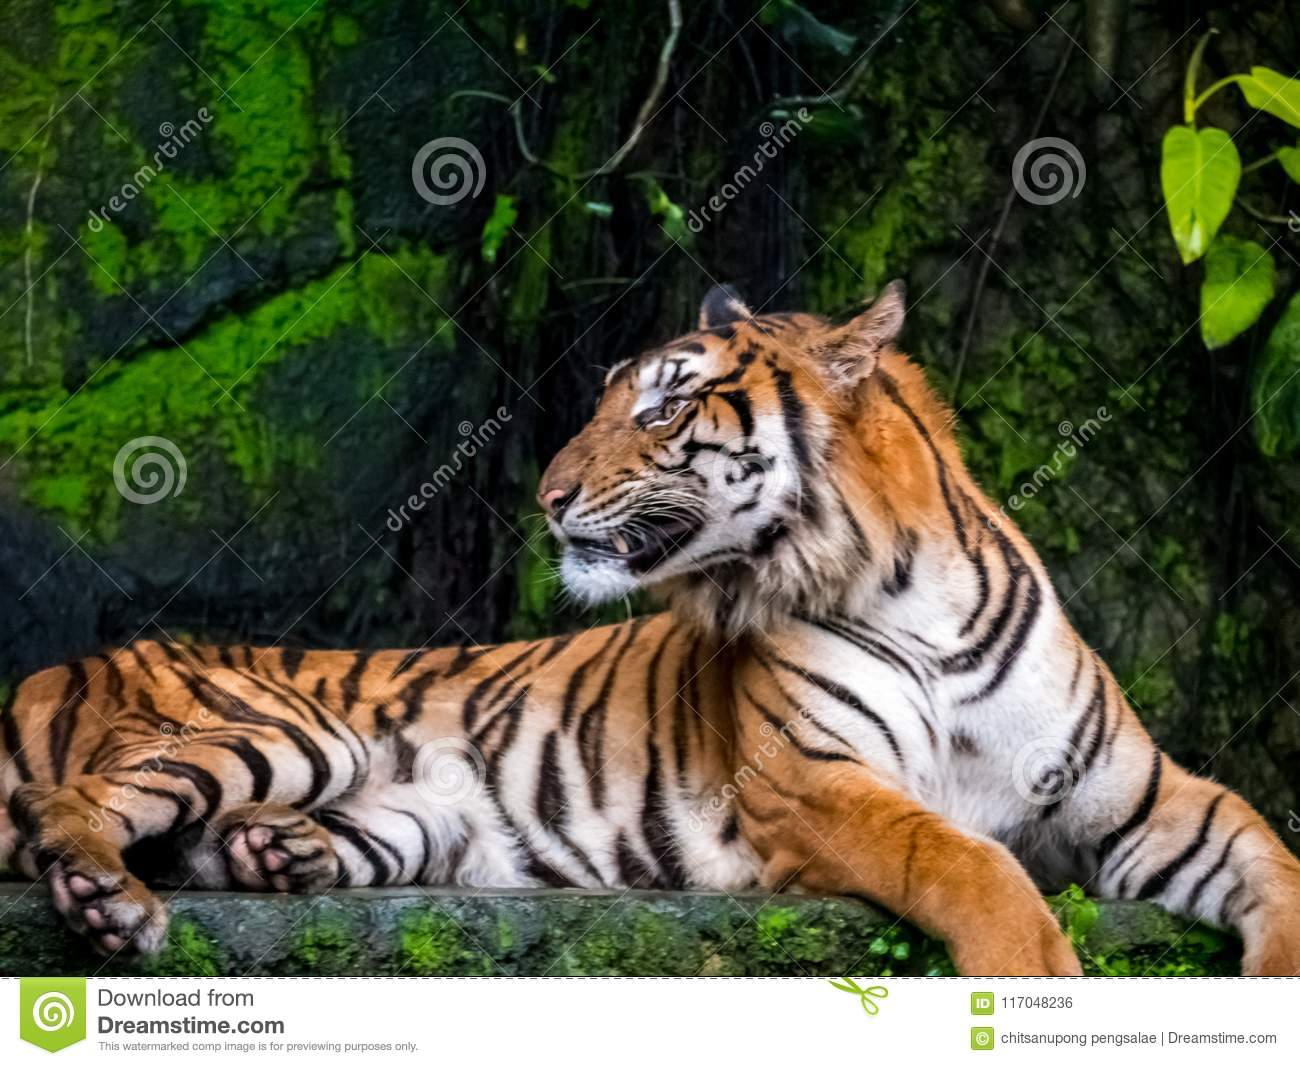 Beautiful Bengal tiger, queen tiger in forest show action nature.